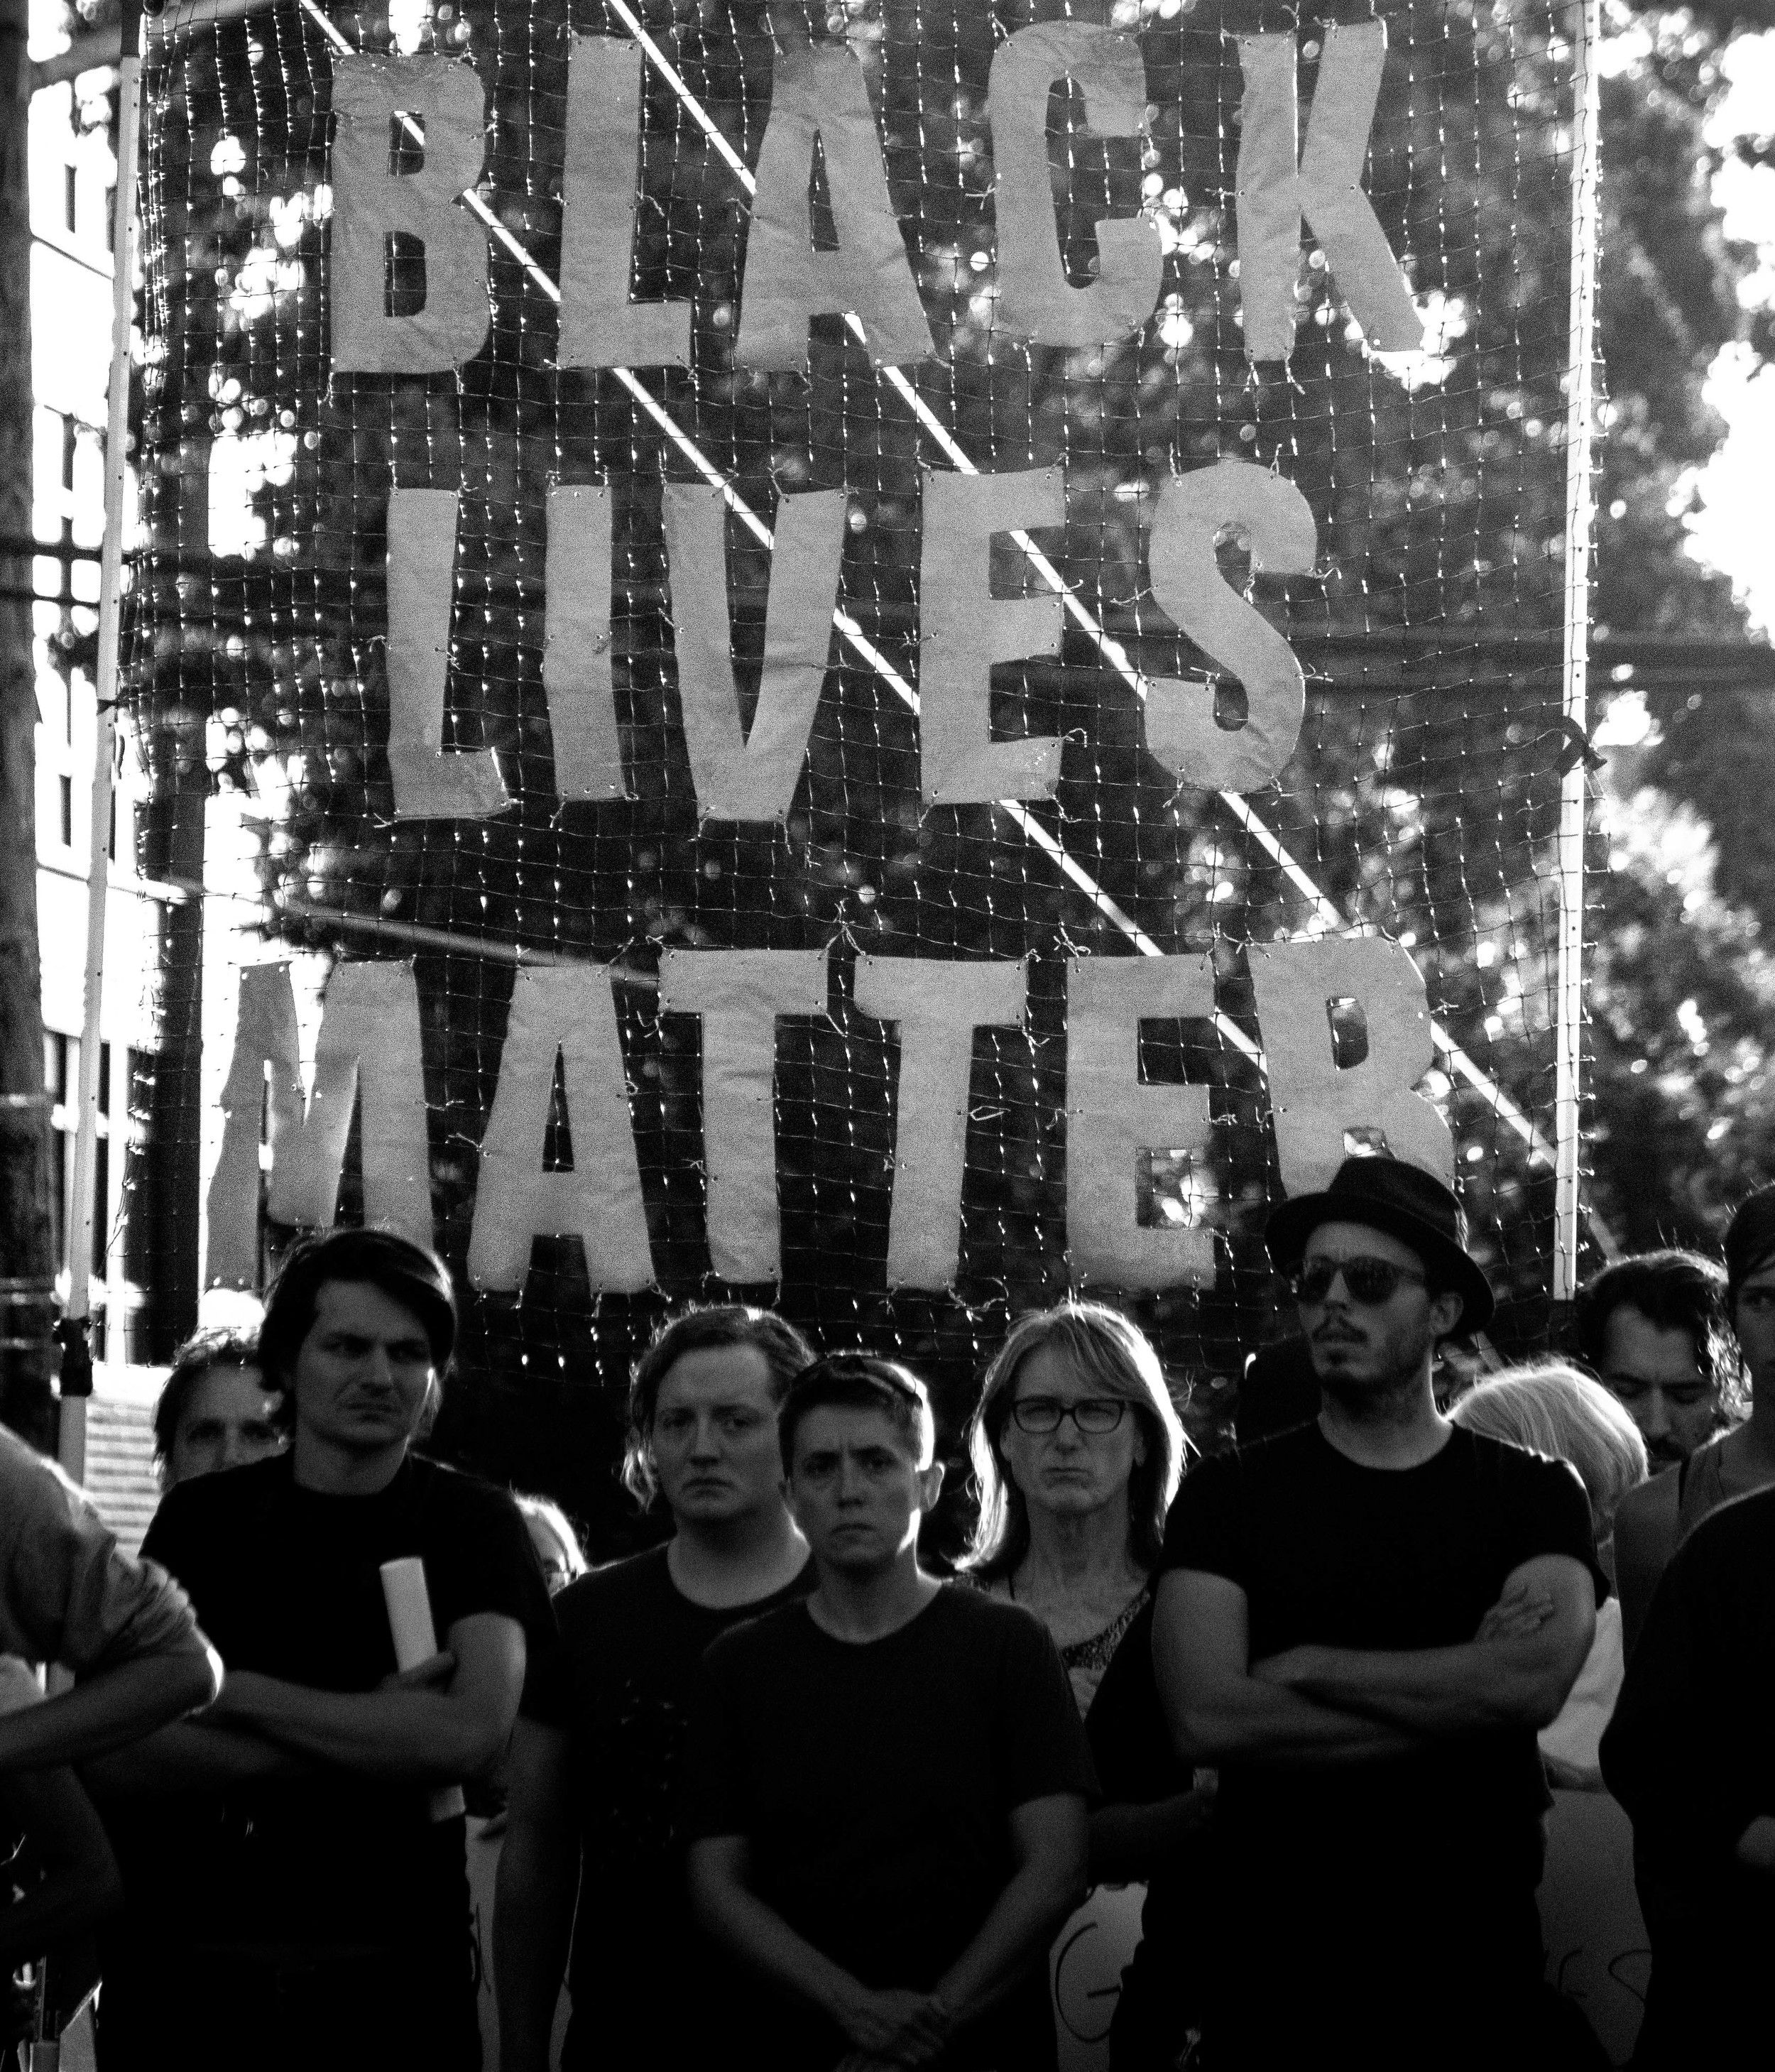 BLM March_BW-7.jpg